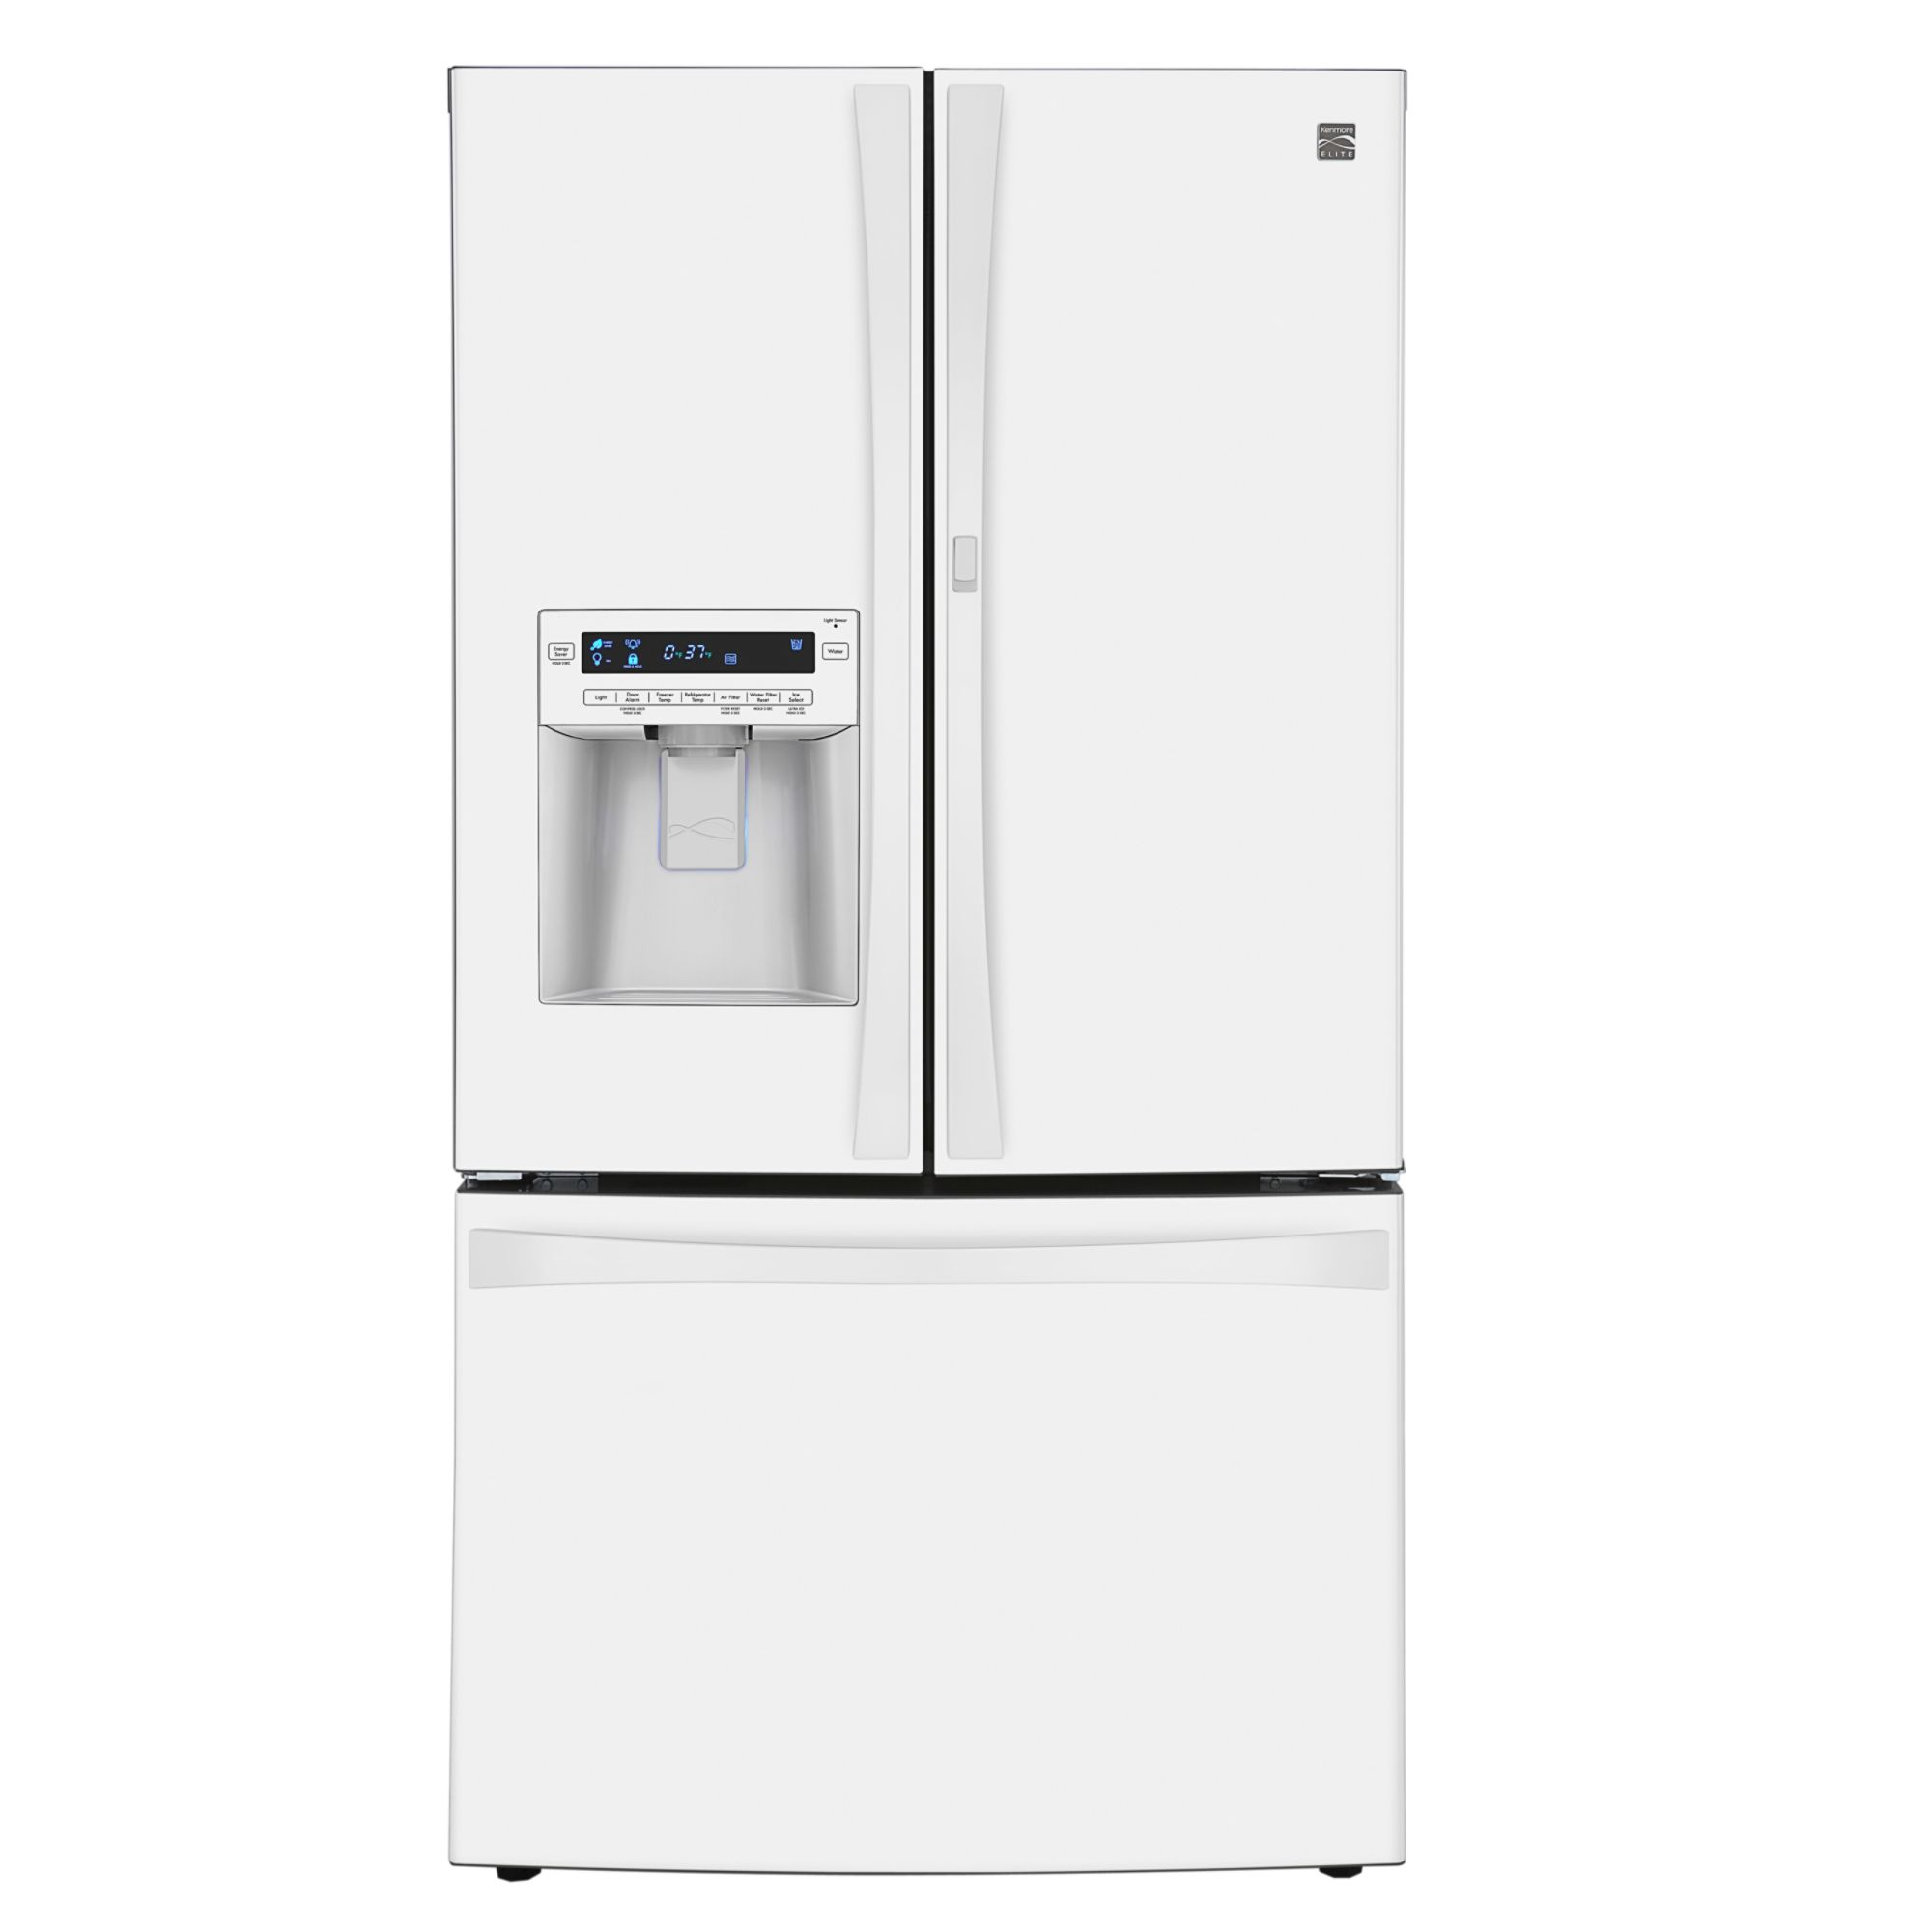 Kenmore Elite 31 cu. ft. Grab-N-Go French Door  Bottom-Freezer Refrigerator - White